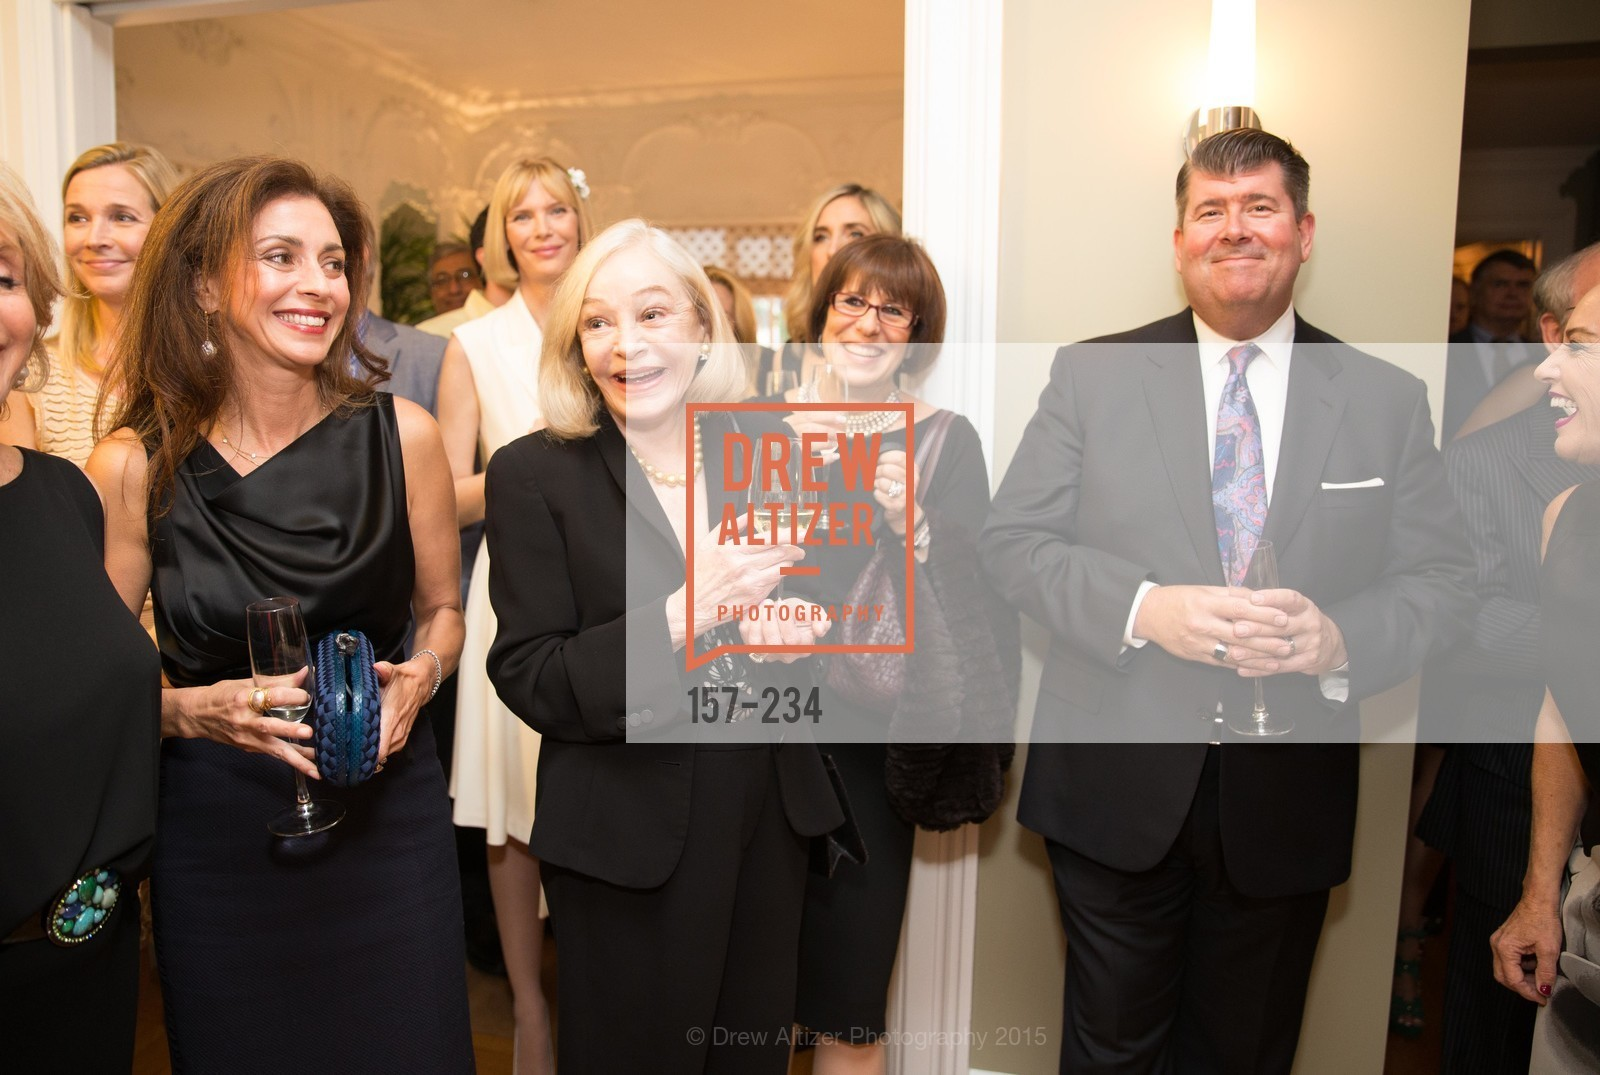 Maryam Muduroglu, Gretchen Kimball, Terri Mino, Alan Morrell, San Francisco Opera Ball 2015 Patron Party, Private Residence, August 19th, 2015,Drew Altizer, Drew Altizer Photography, full-service agency, private events, San Francisco photographer, photographer california